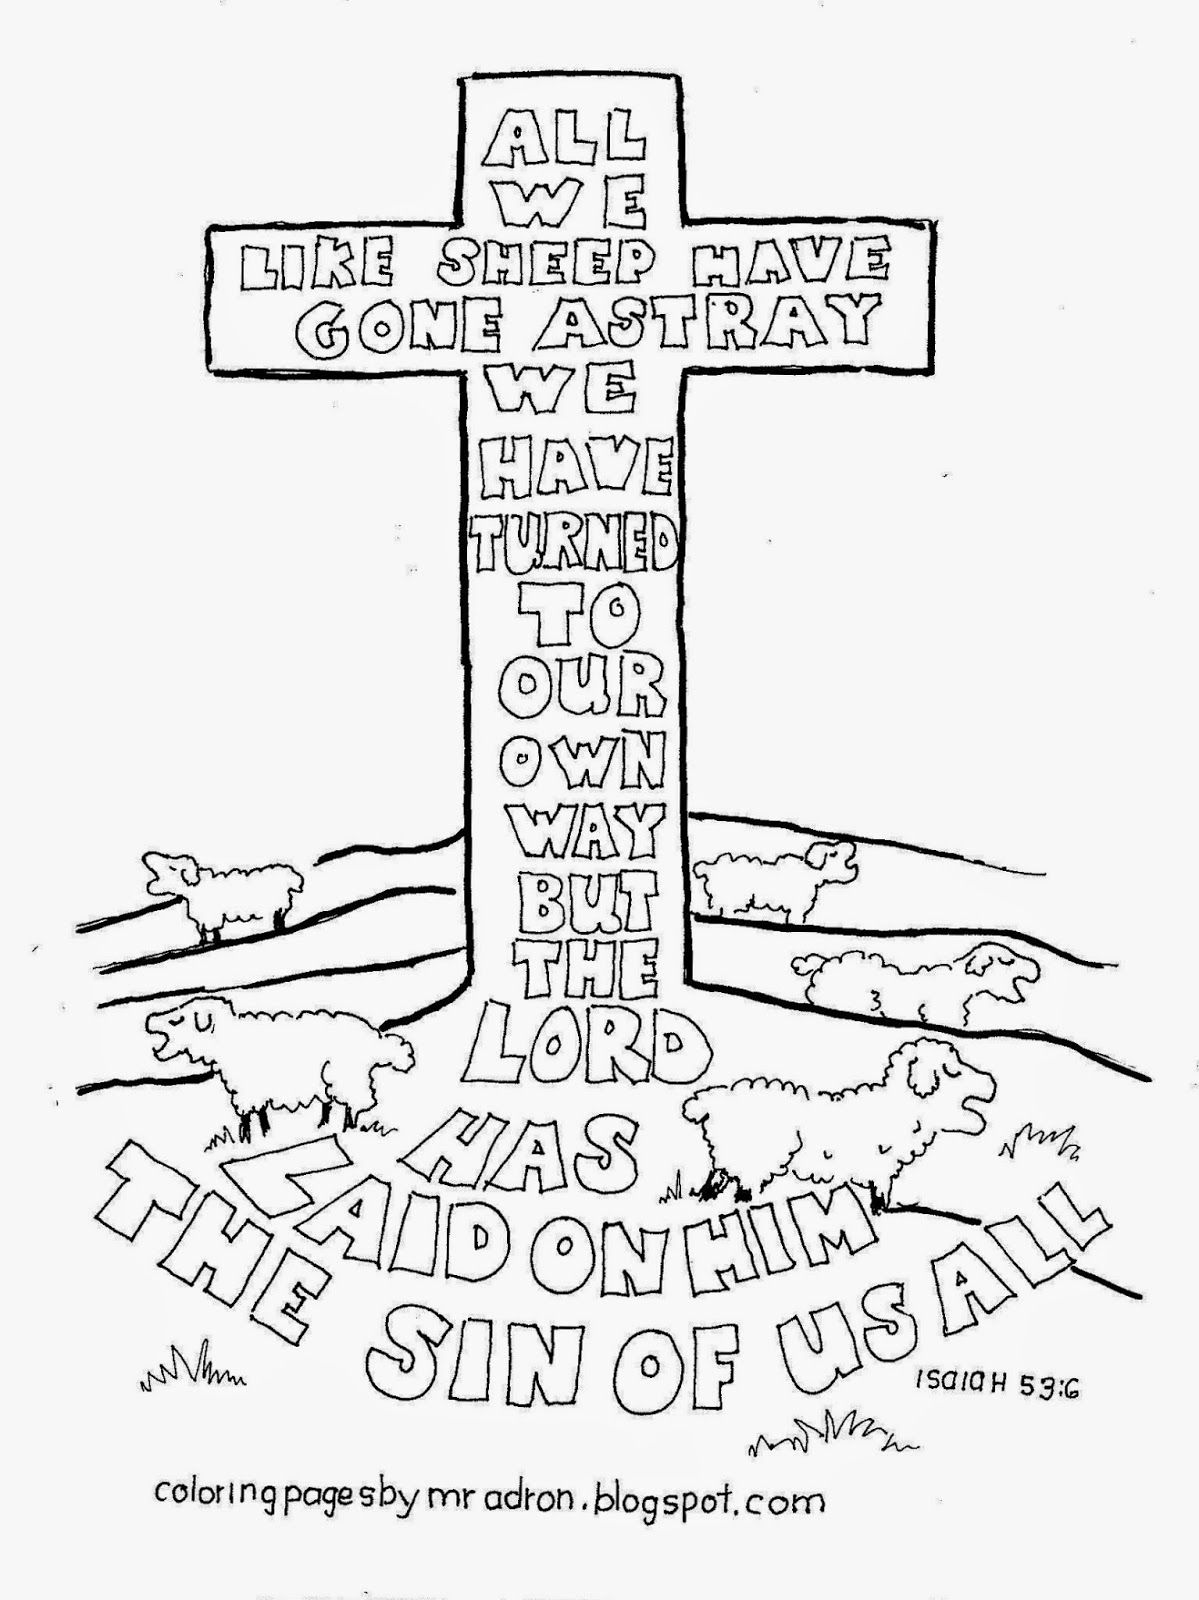 Coloring Pages For Kids By Mr Adron All We Like Sheep Have Gone Astray Coloring Page Fre Bible Verse Coloring Page Bible Verse Coloring Bible Coloring Pages